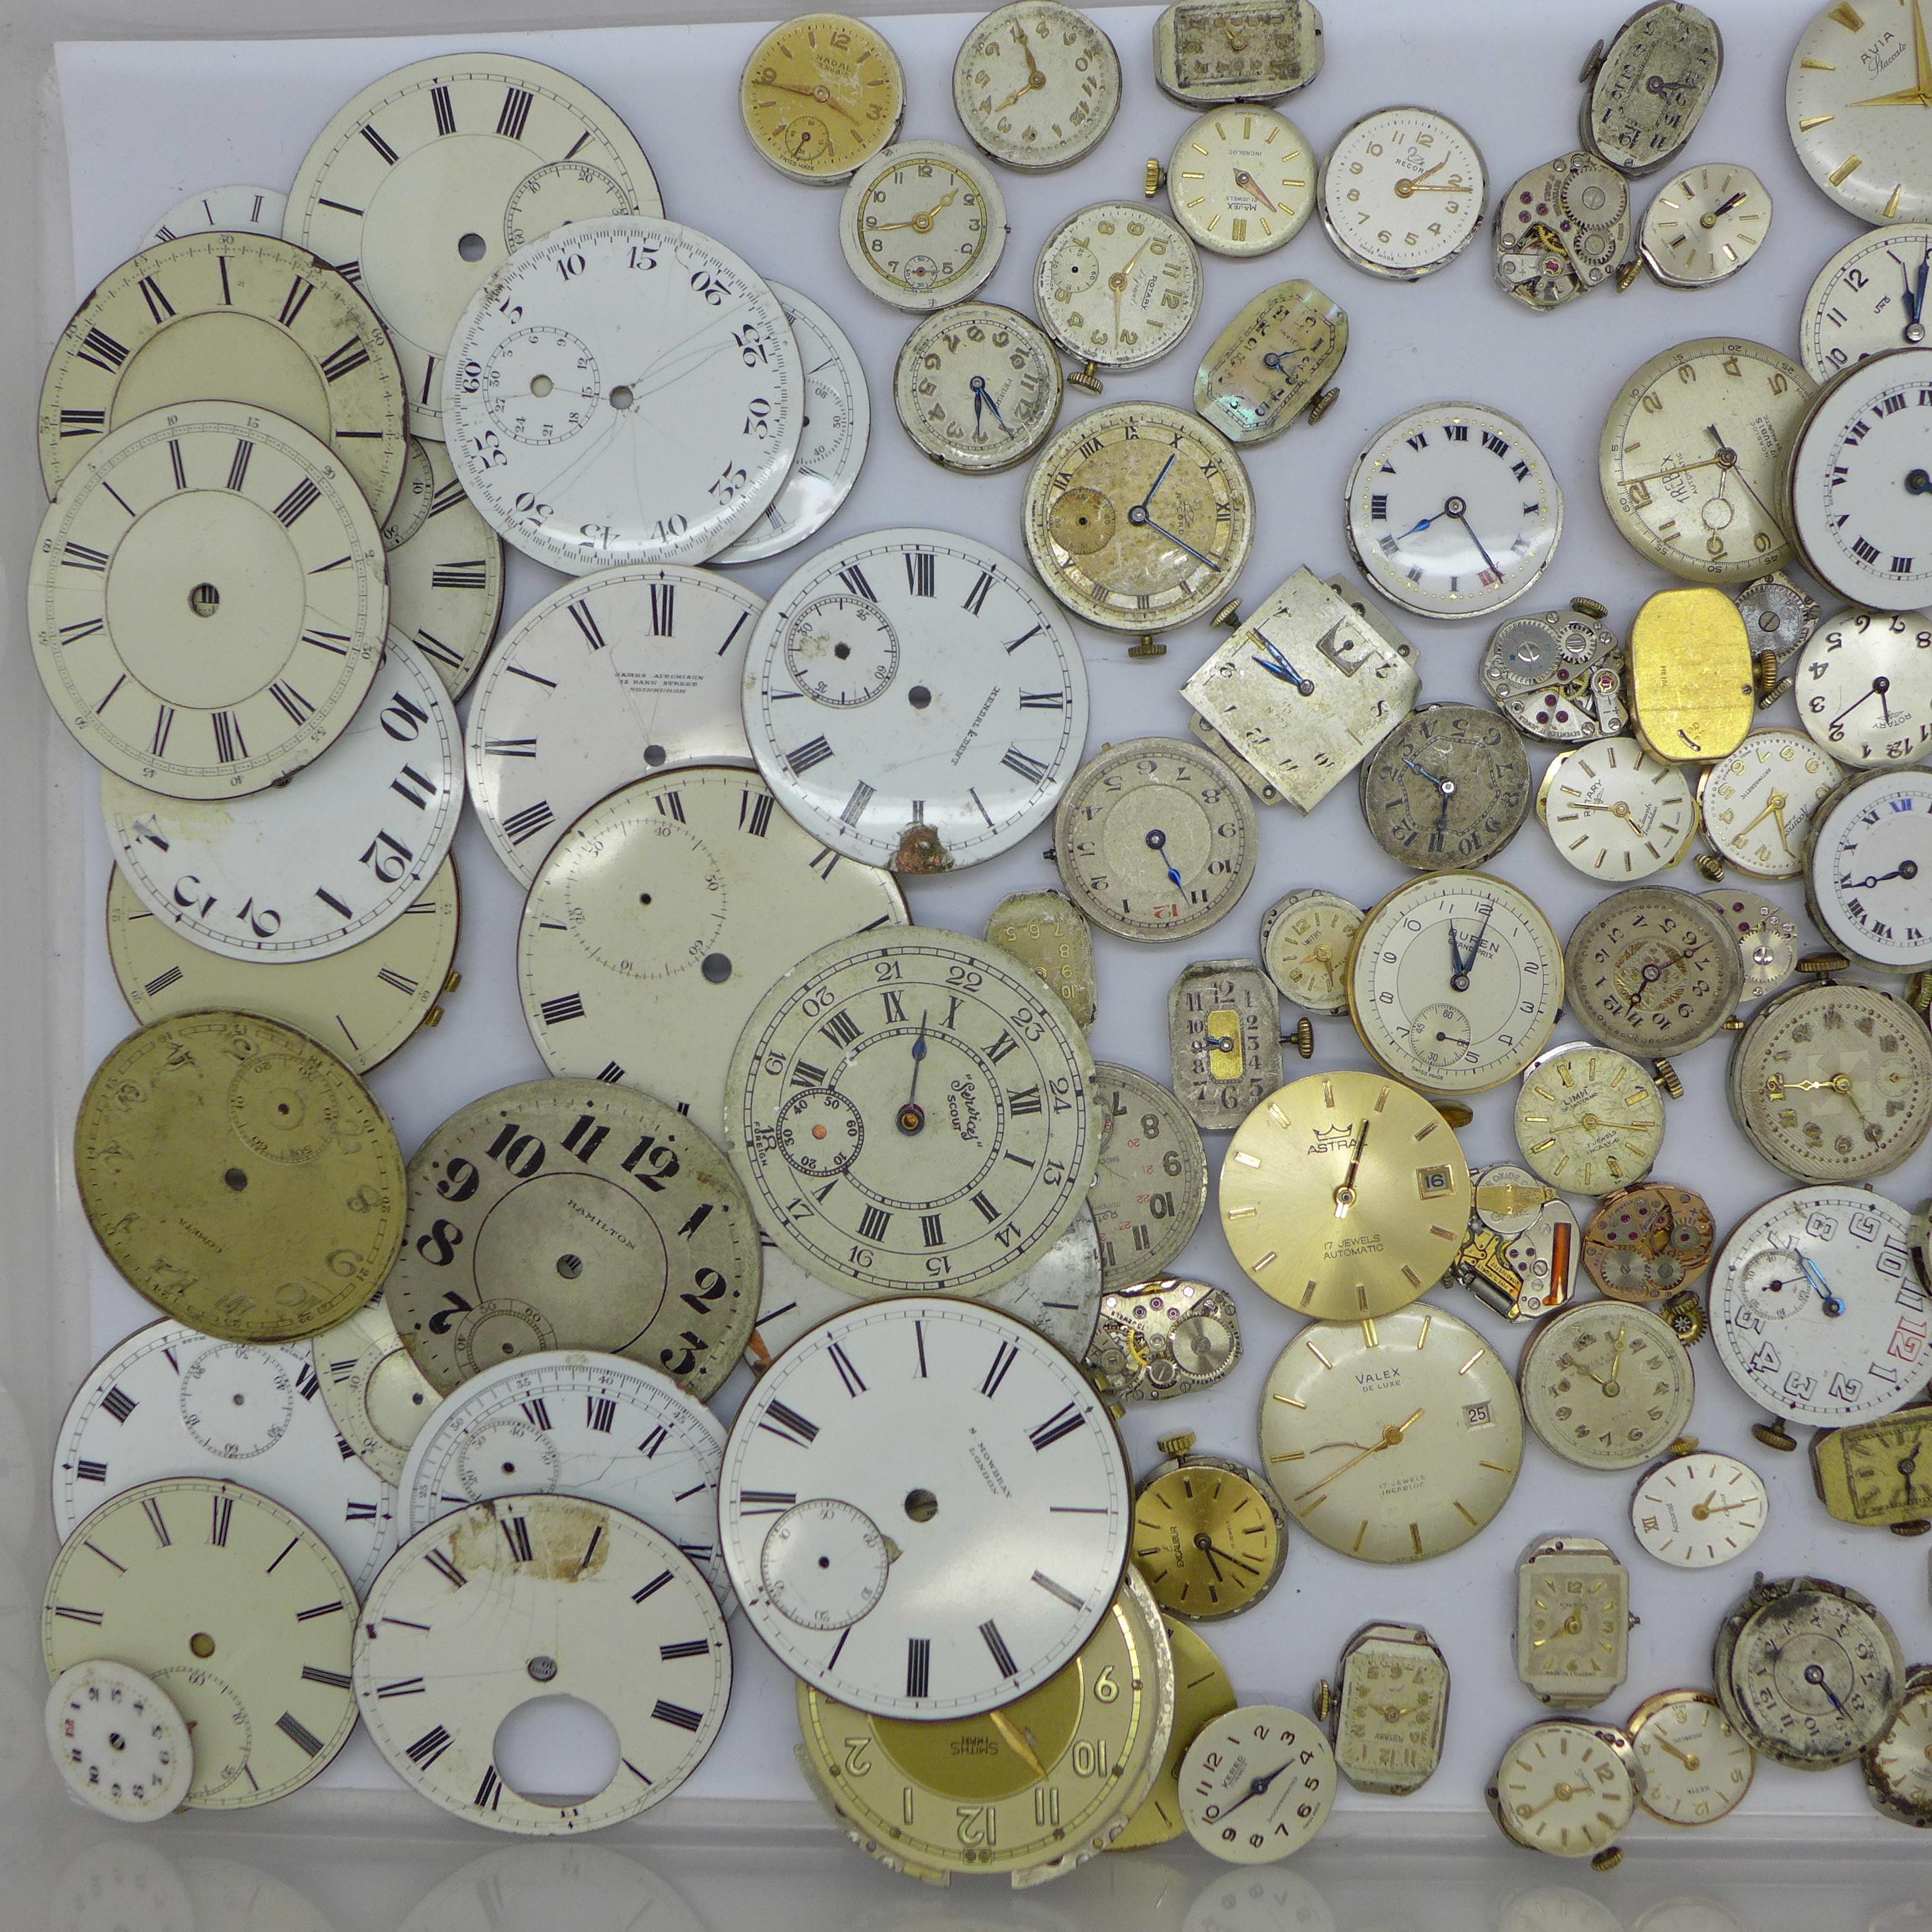 Lady's and gentleman's wristwatch movements including Tissot, Record, Waltham, Thos Russell, Rotary, - Image 2 of 3